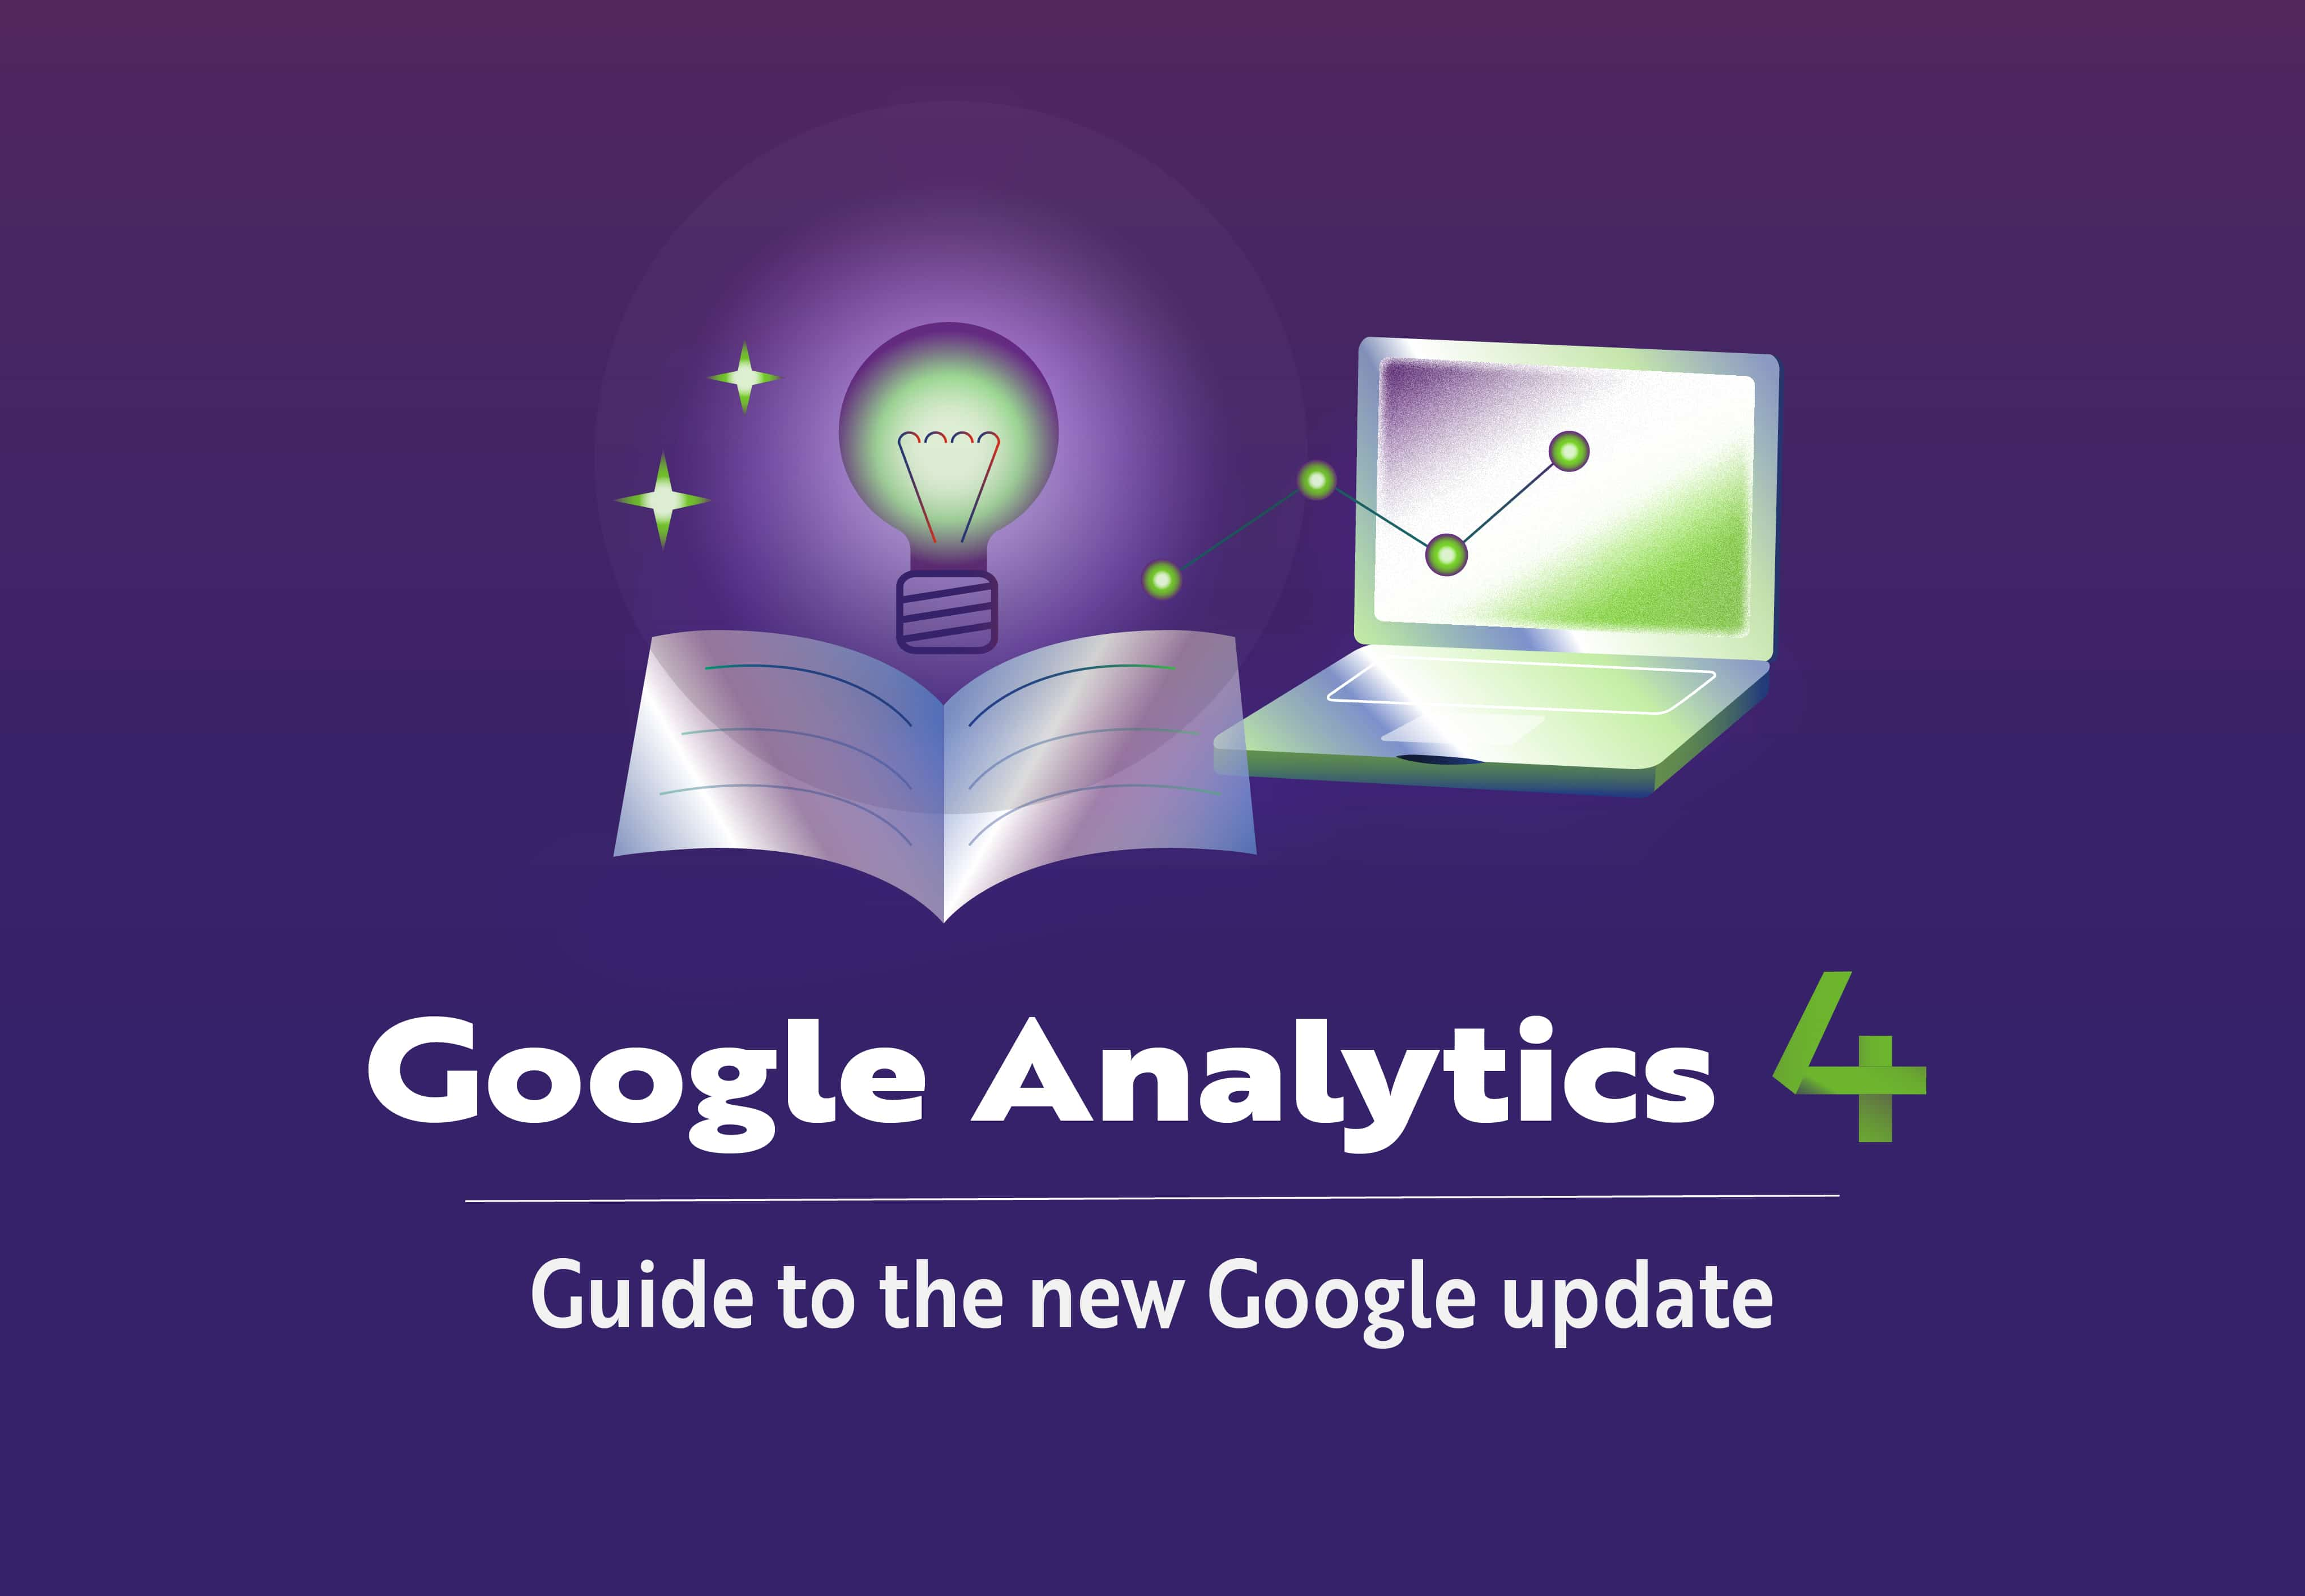 Google Analytics 4: Guide to the new Google update